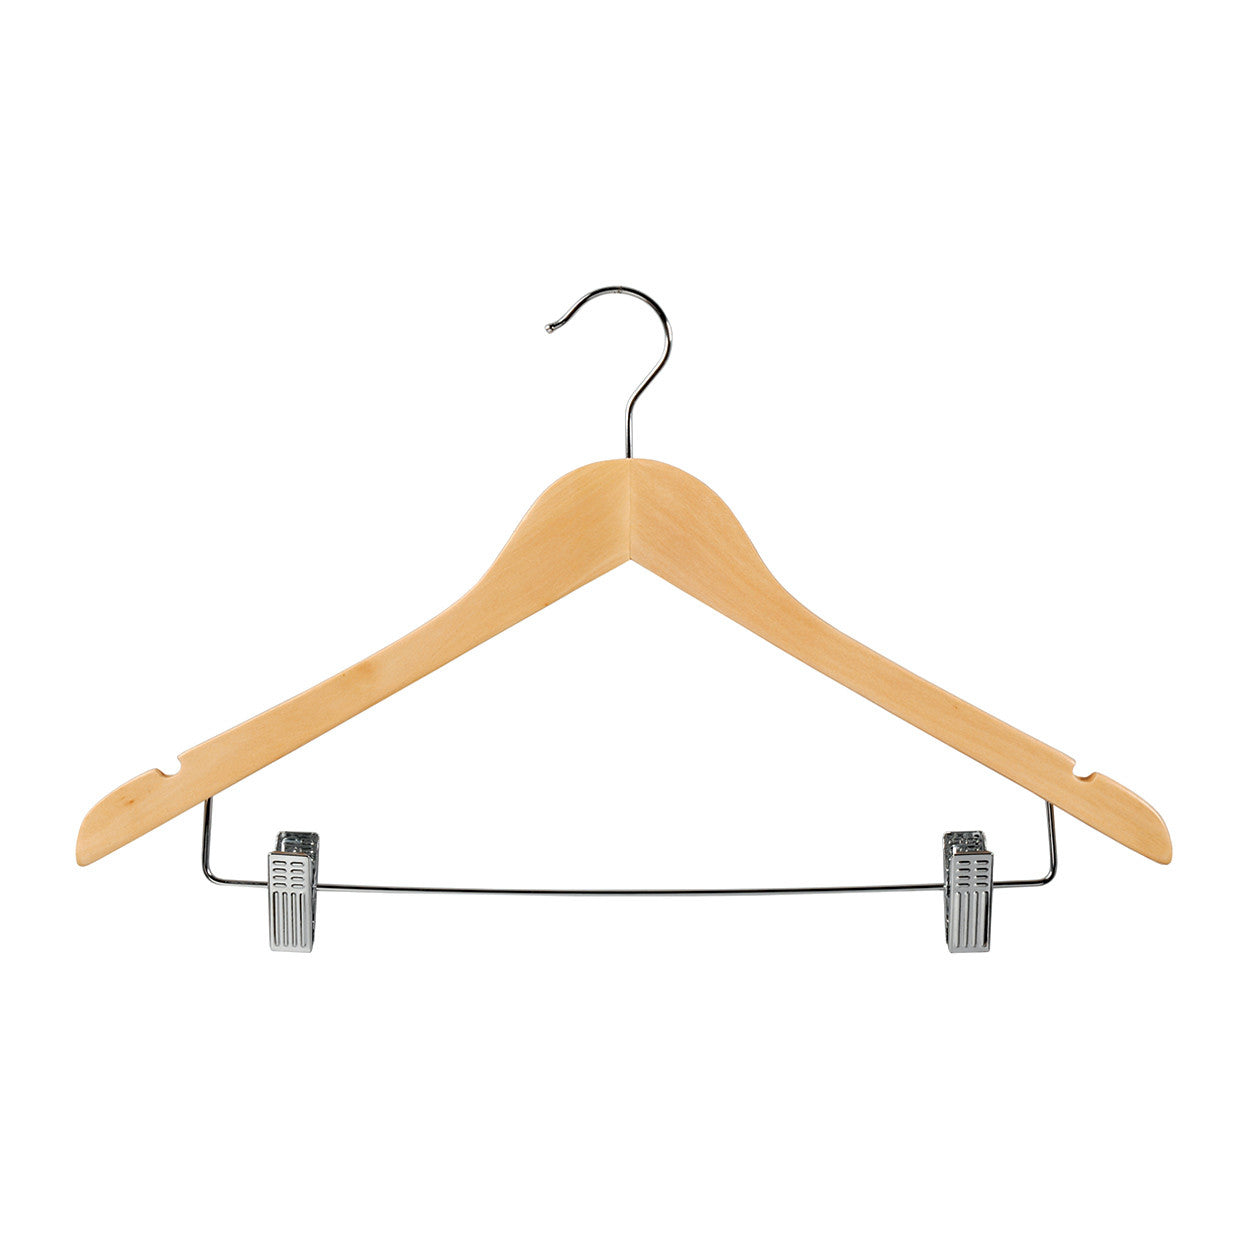 Beech Wooden hanger with notches & adjustable clips 440 W x 14 mm Thick (Bundle of 50) H2631BH-50